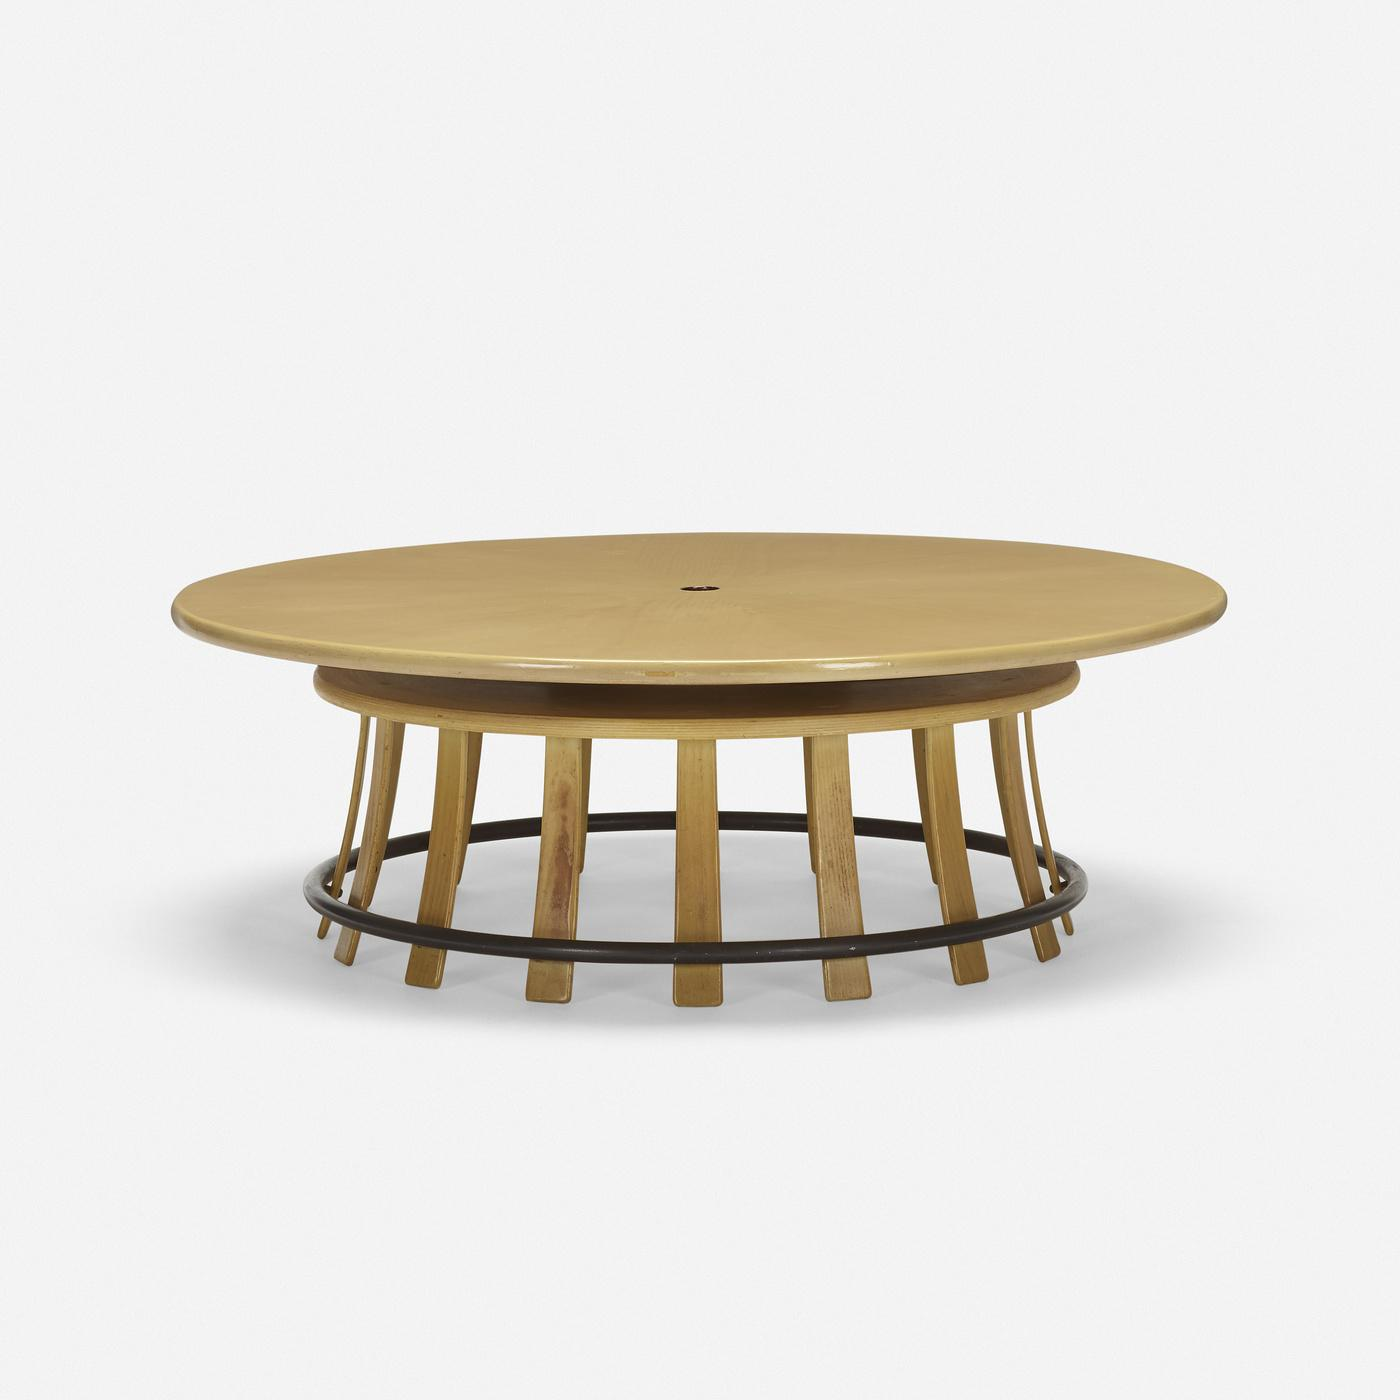 Wormley Toad Stool Table